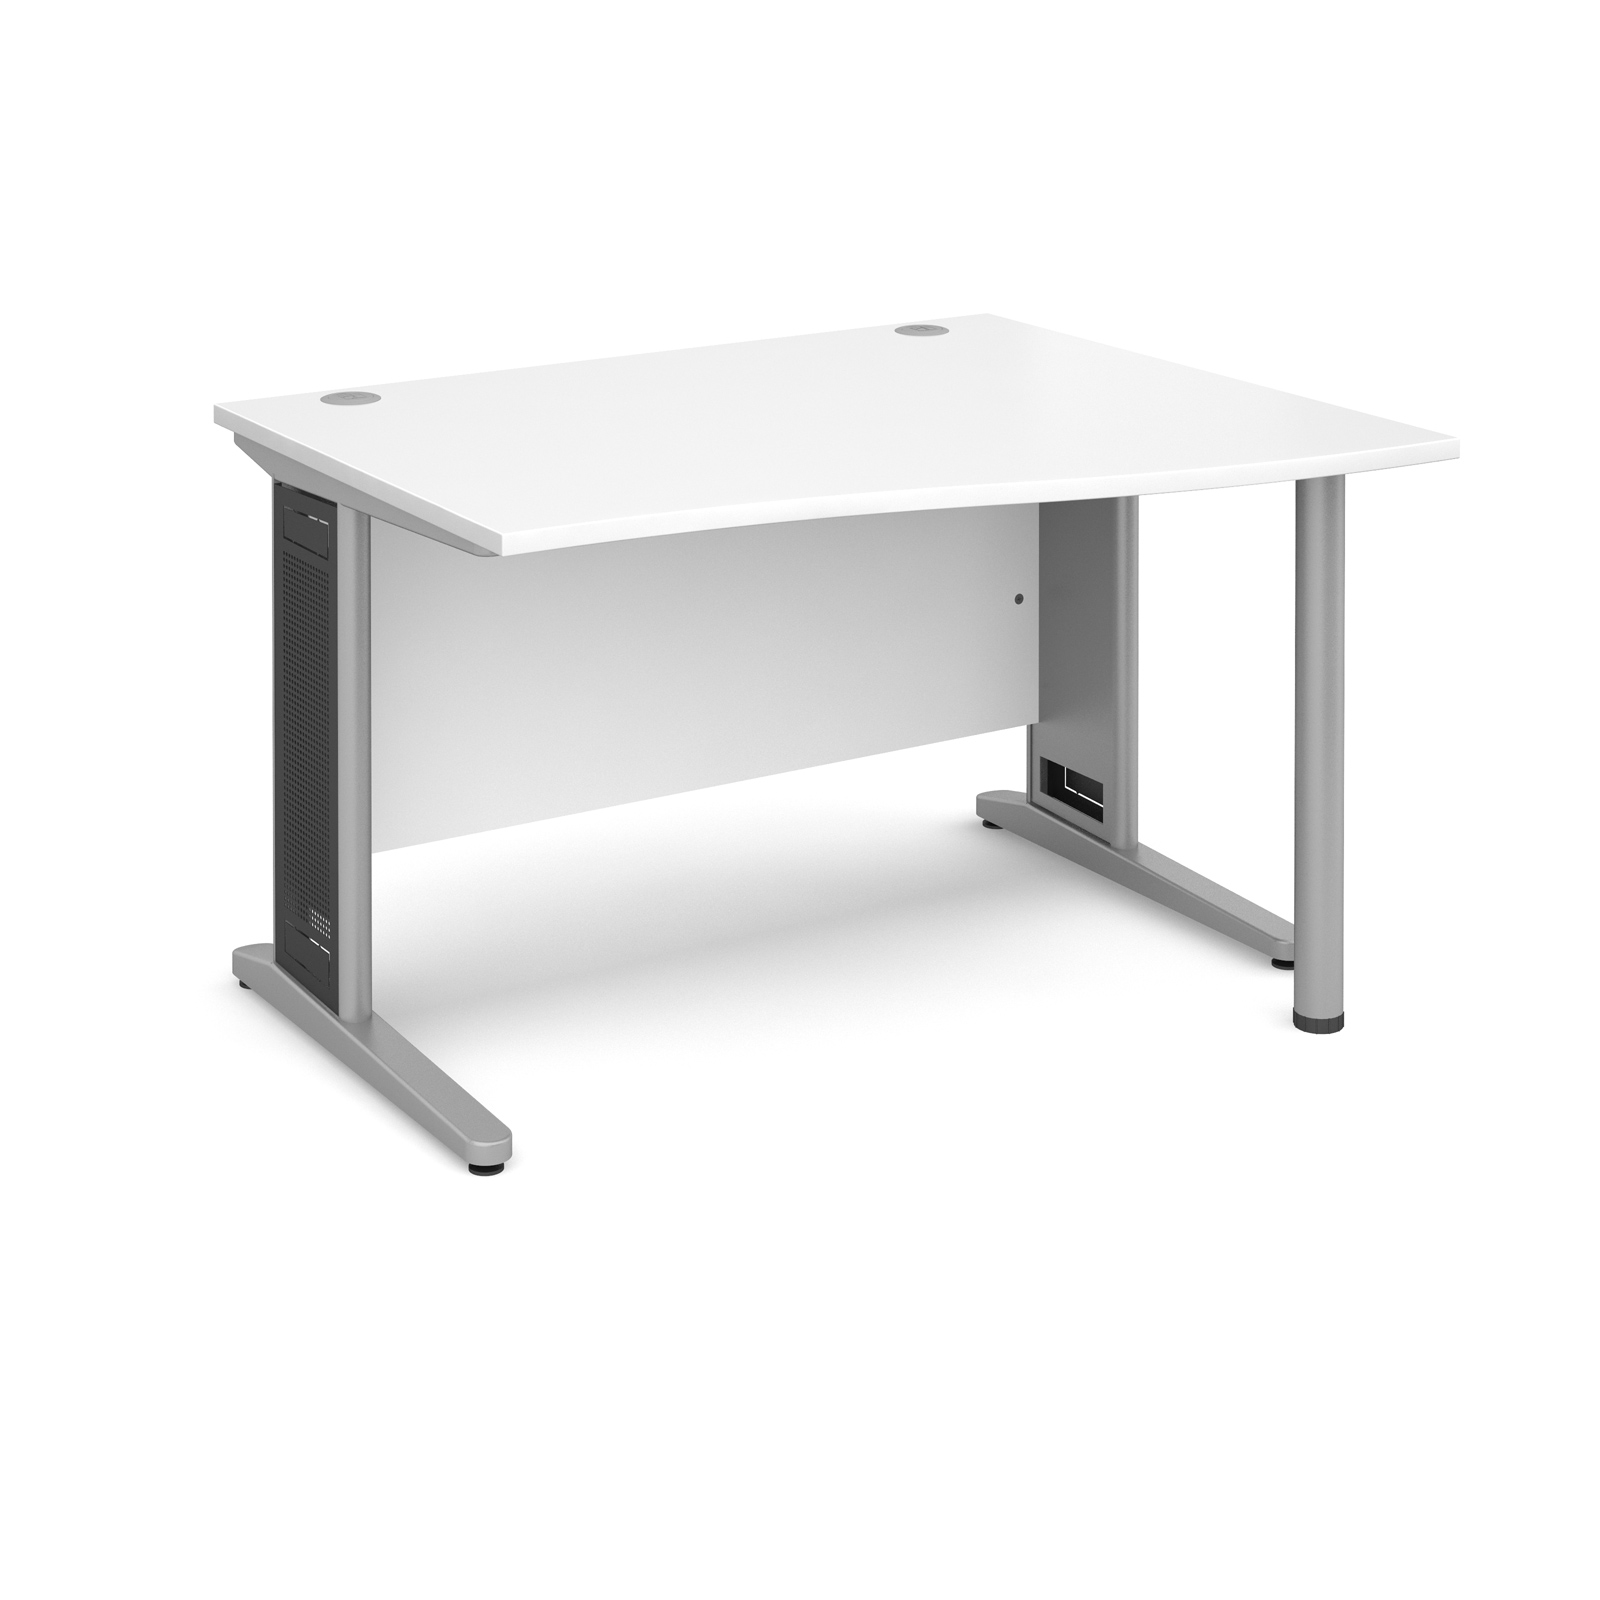 Largo right hand wave desk 1200mm - silver cantilever frame with removable grill, white top